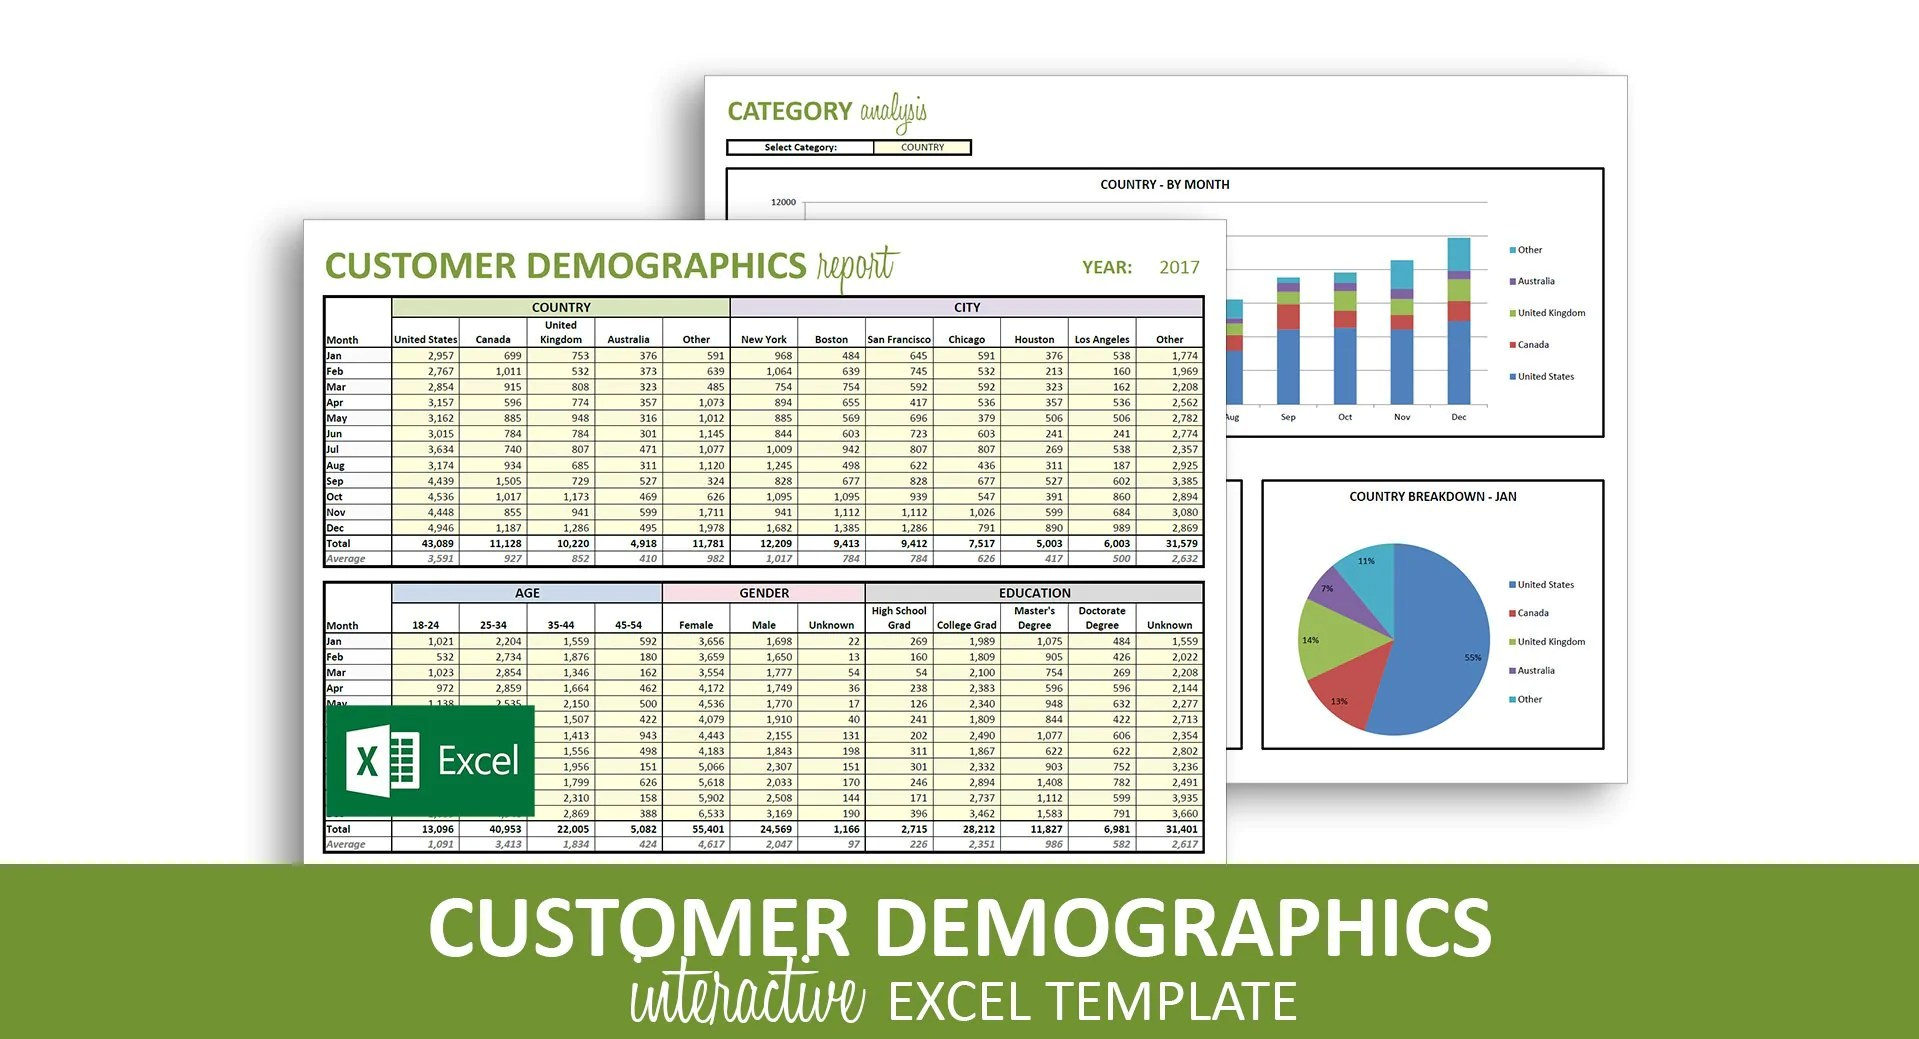 20 free marketing reporting templates for seo ppc social. Customer Demographics Report Excel Template Savvy Spreadsheets